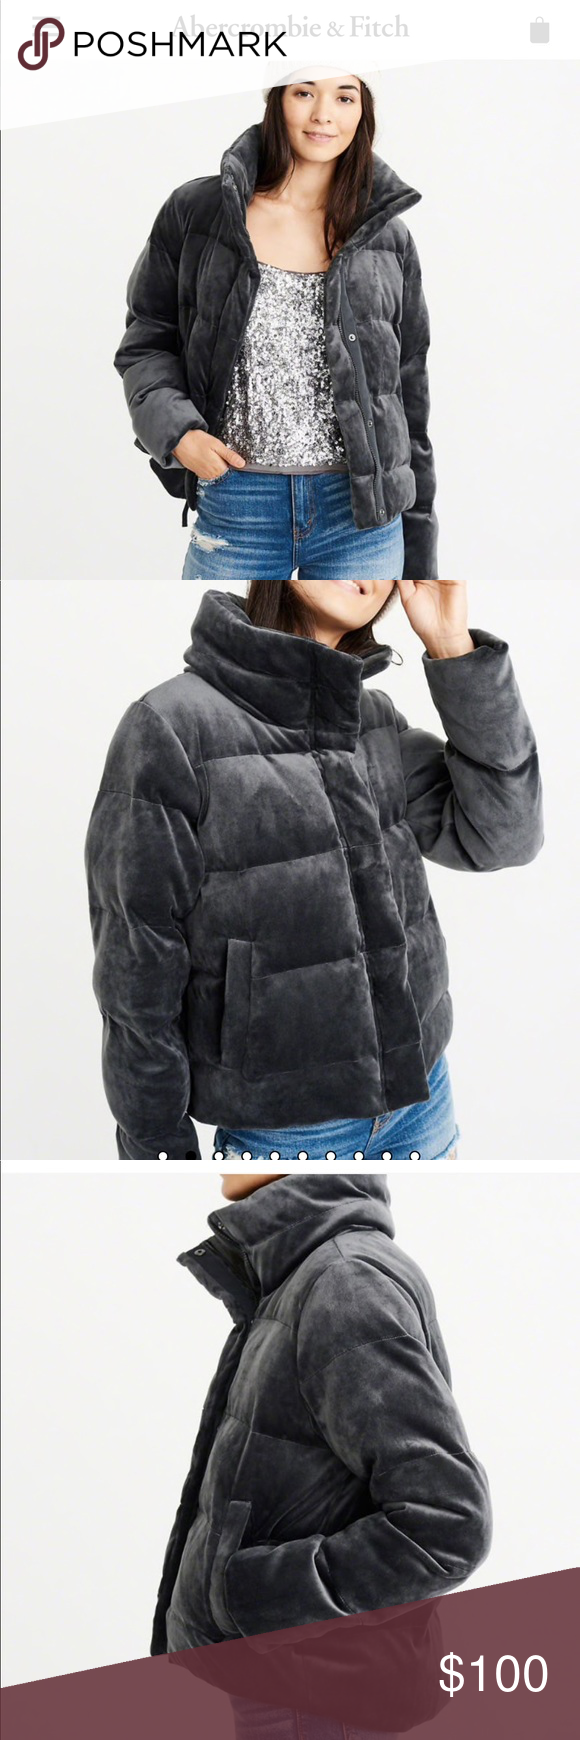 Abercrombie Velvet Ultra Mini Puffer Puffer Outfit Abercrombie And Fitch Jackets Clothes Design [ 1740 x 580 Pixel ]